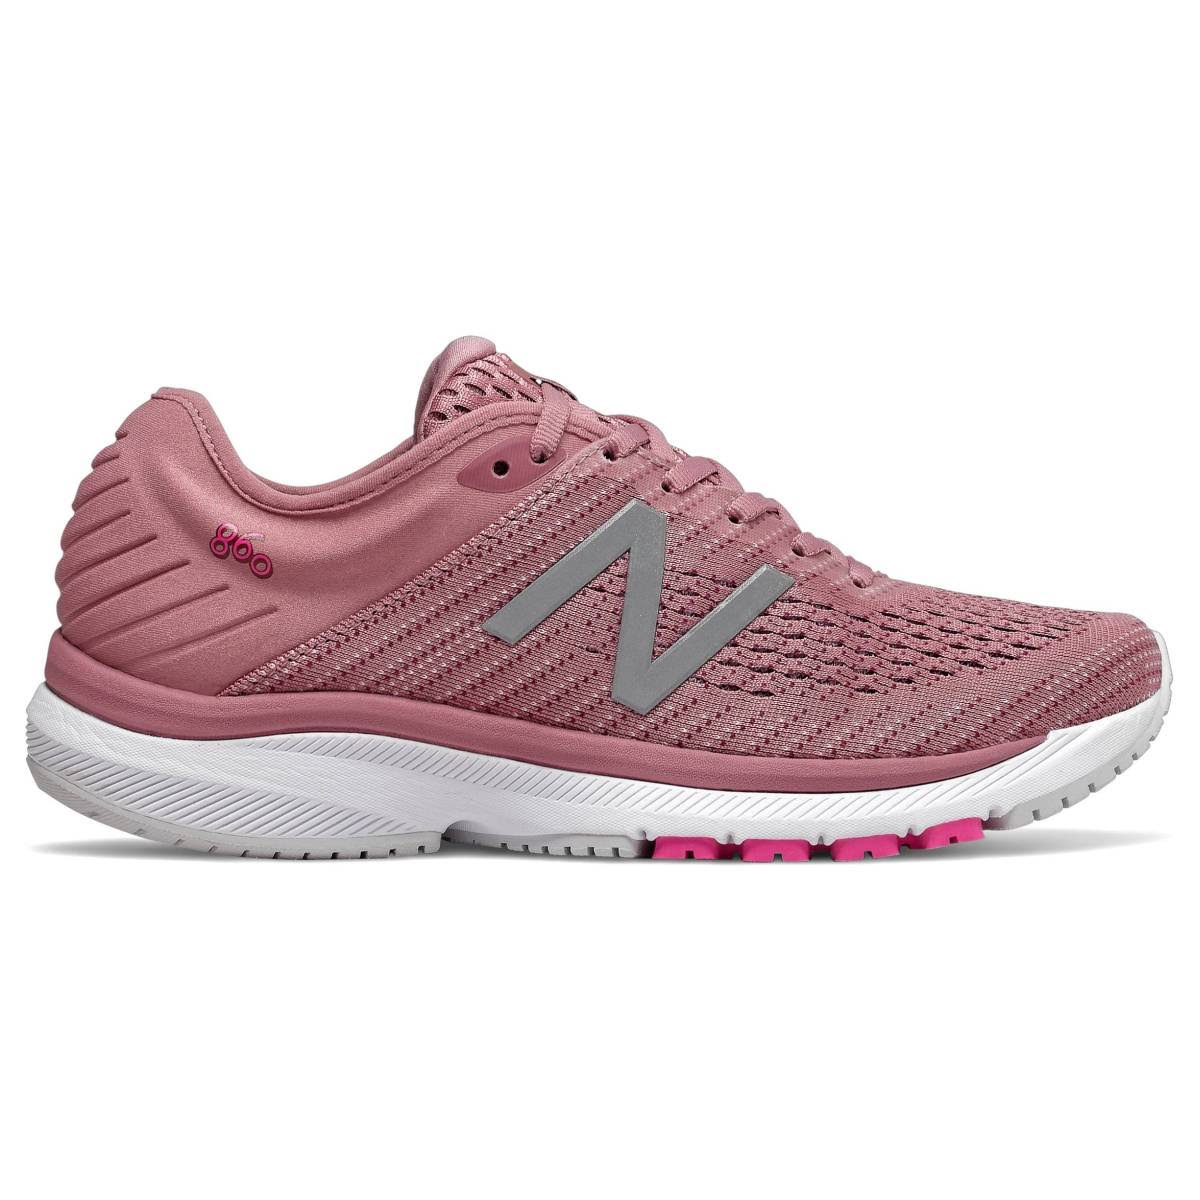 New Balance 860v10 Women's Running Shoe - Pink - 8.5